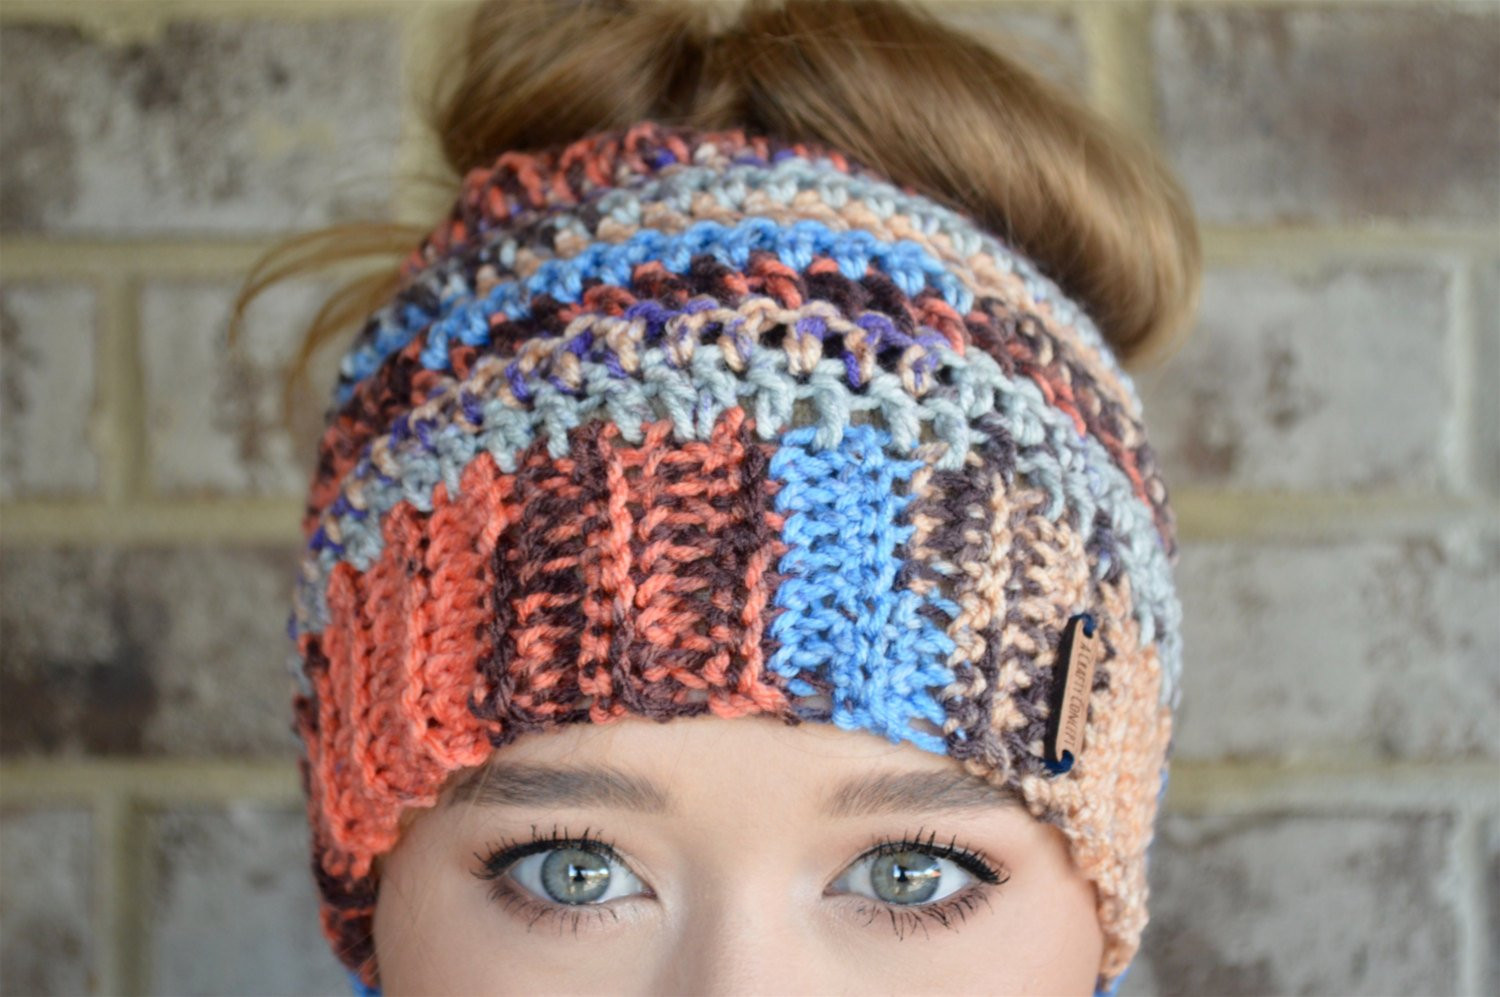 Best Of Crochet Messy Bun Beanie Messy Bun Hat Messy Bun Beanie Bun Beanie Crochet Pattern Of Charming 42 Pics Bun Beanie Crochet Pattern